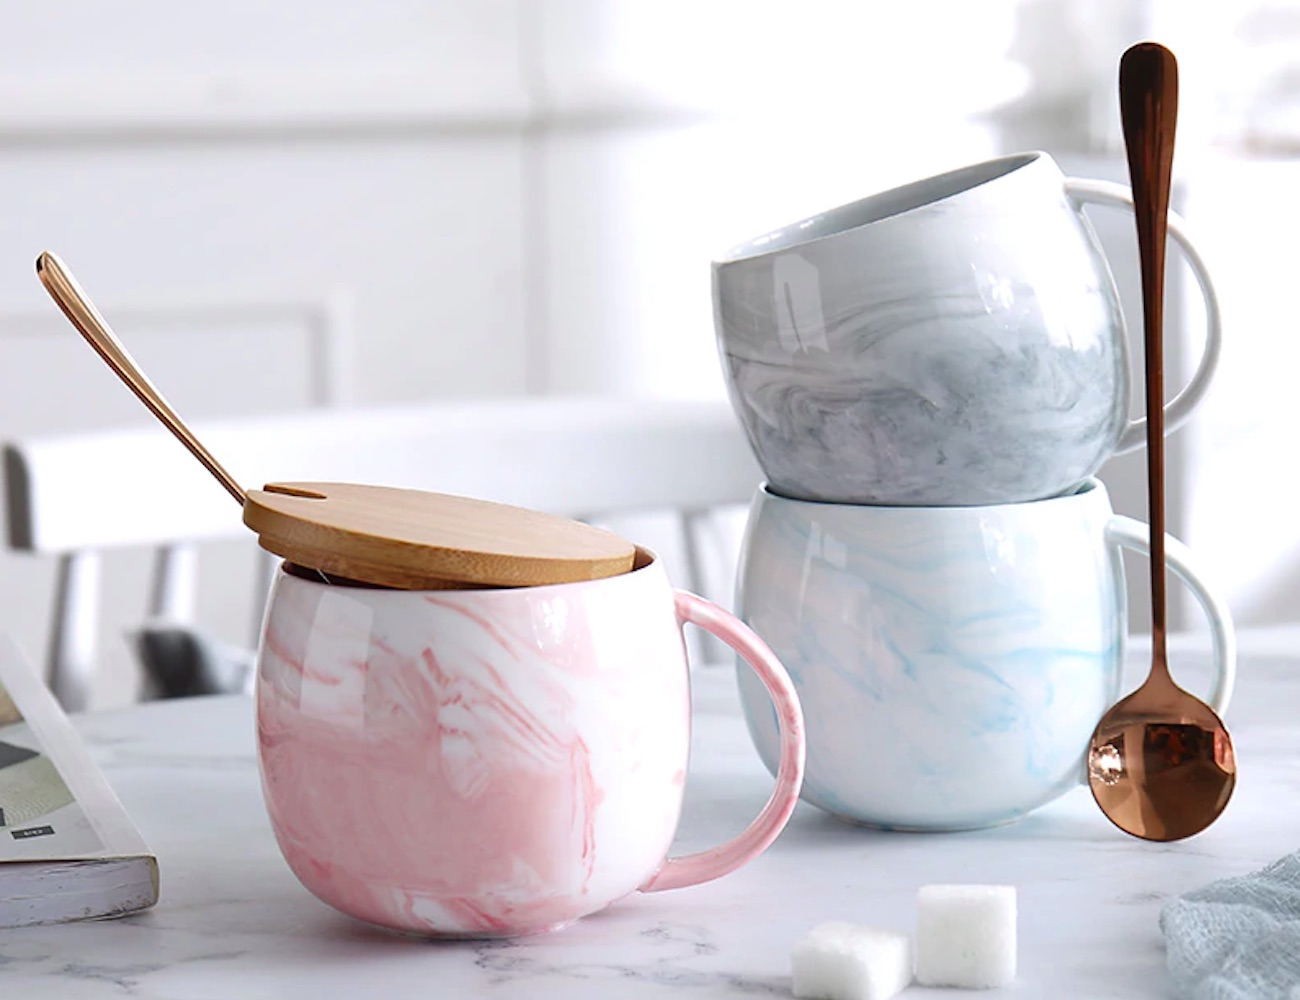 Marble Ceramic Coffee Mug with Lid and Spoon is equally beautiful and useful